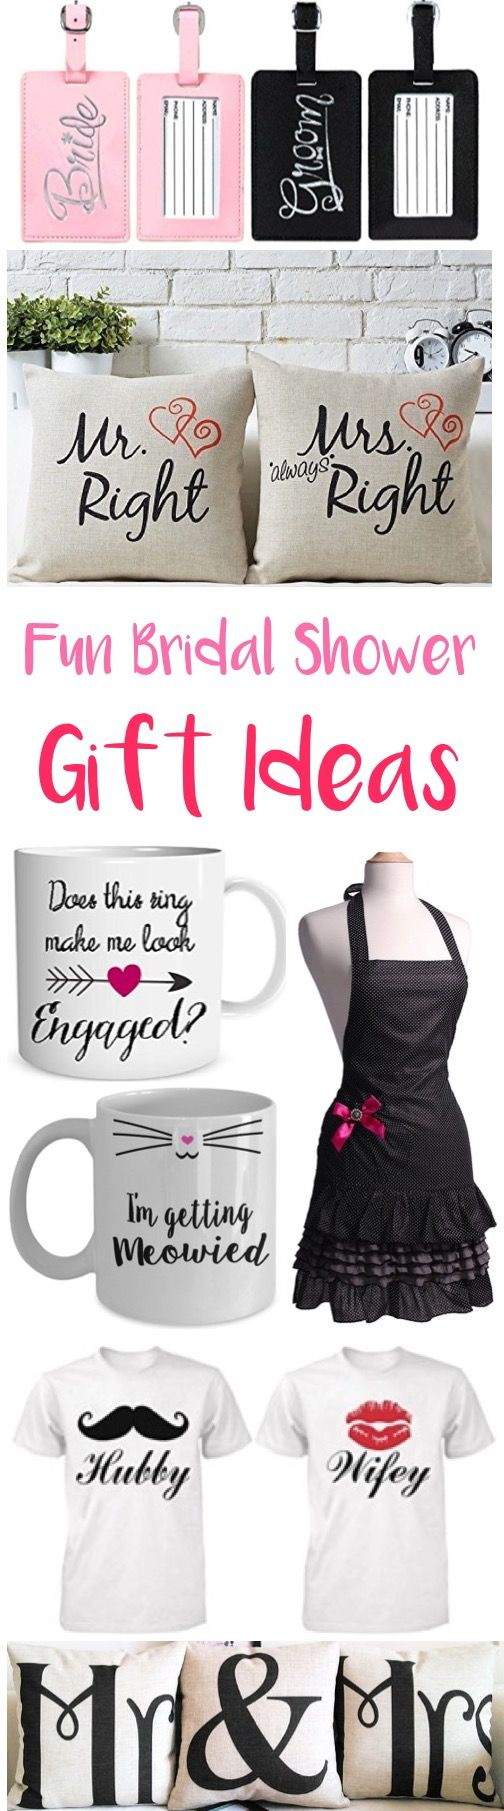 29 Bridal Shower Gifts for the Bride to Be!  So many fun gift ideas she'll LOVE! | TheFrugalGirls.com